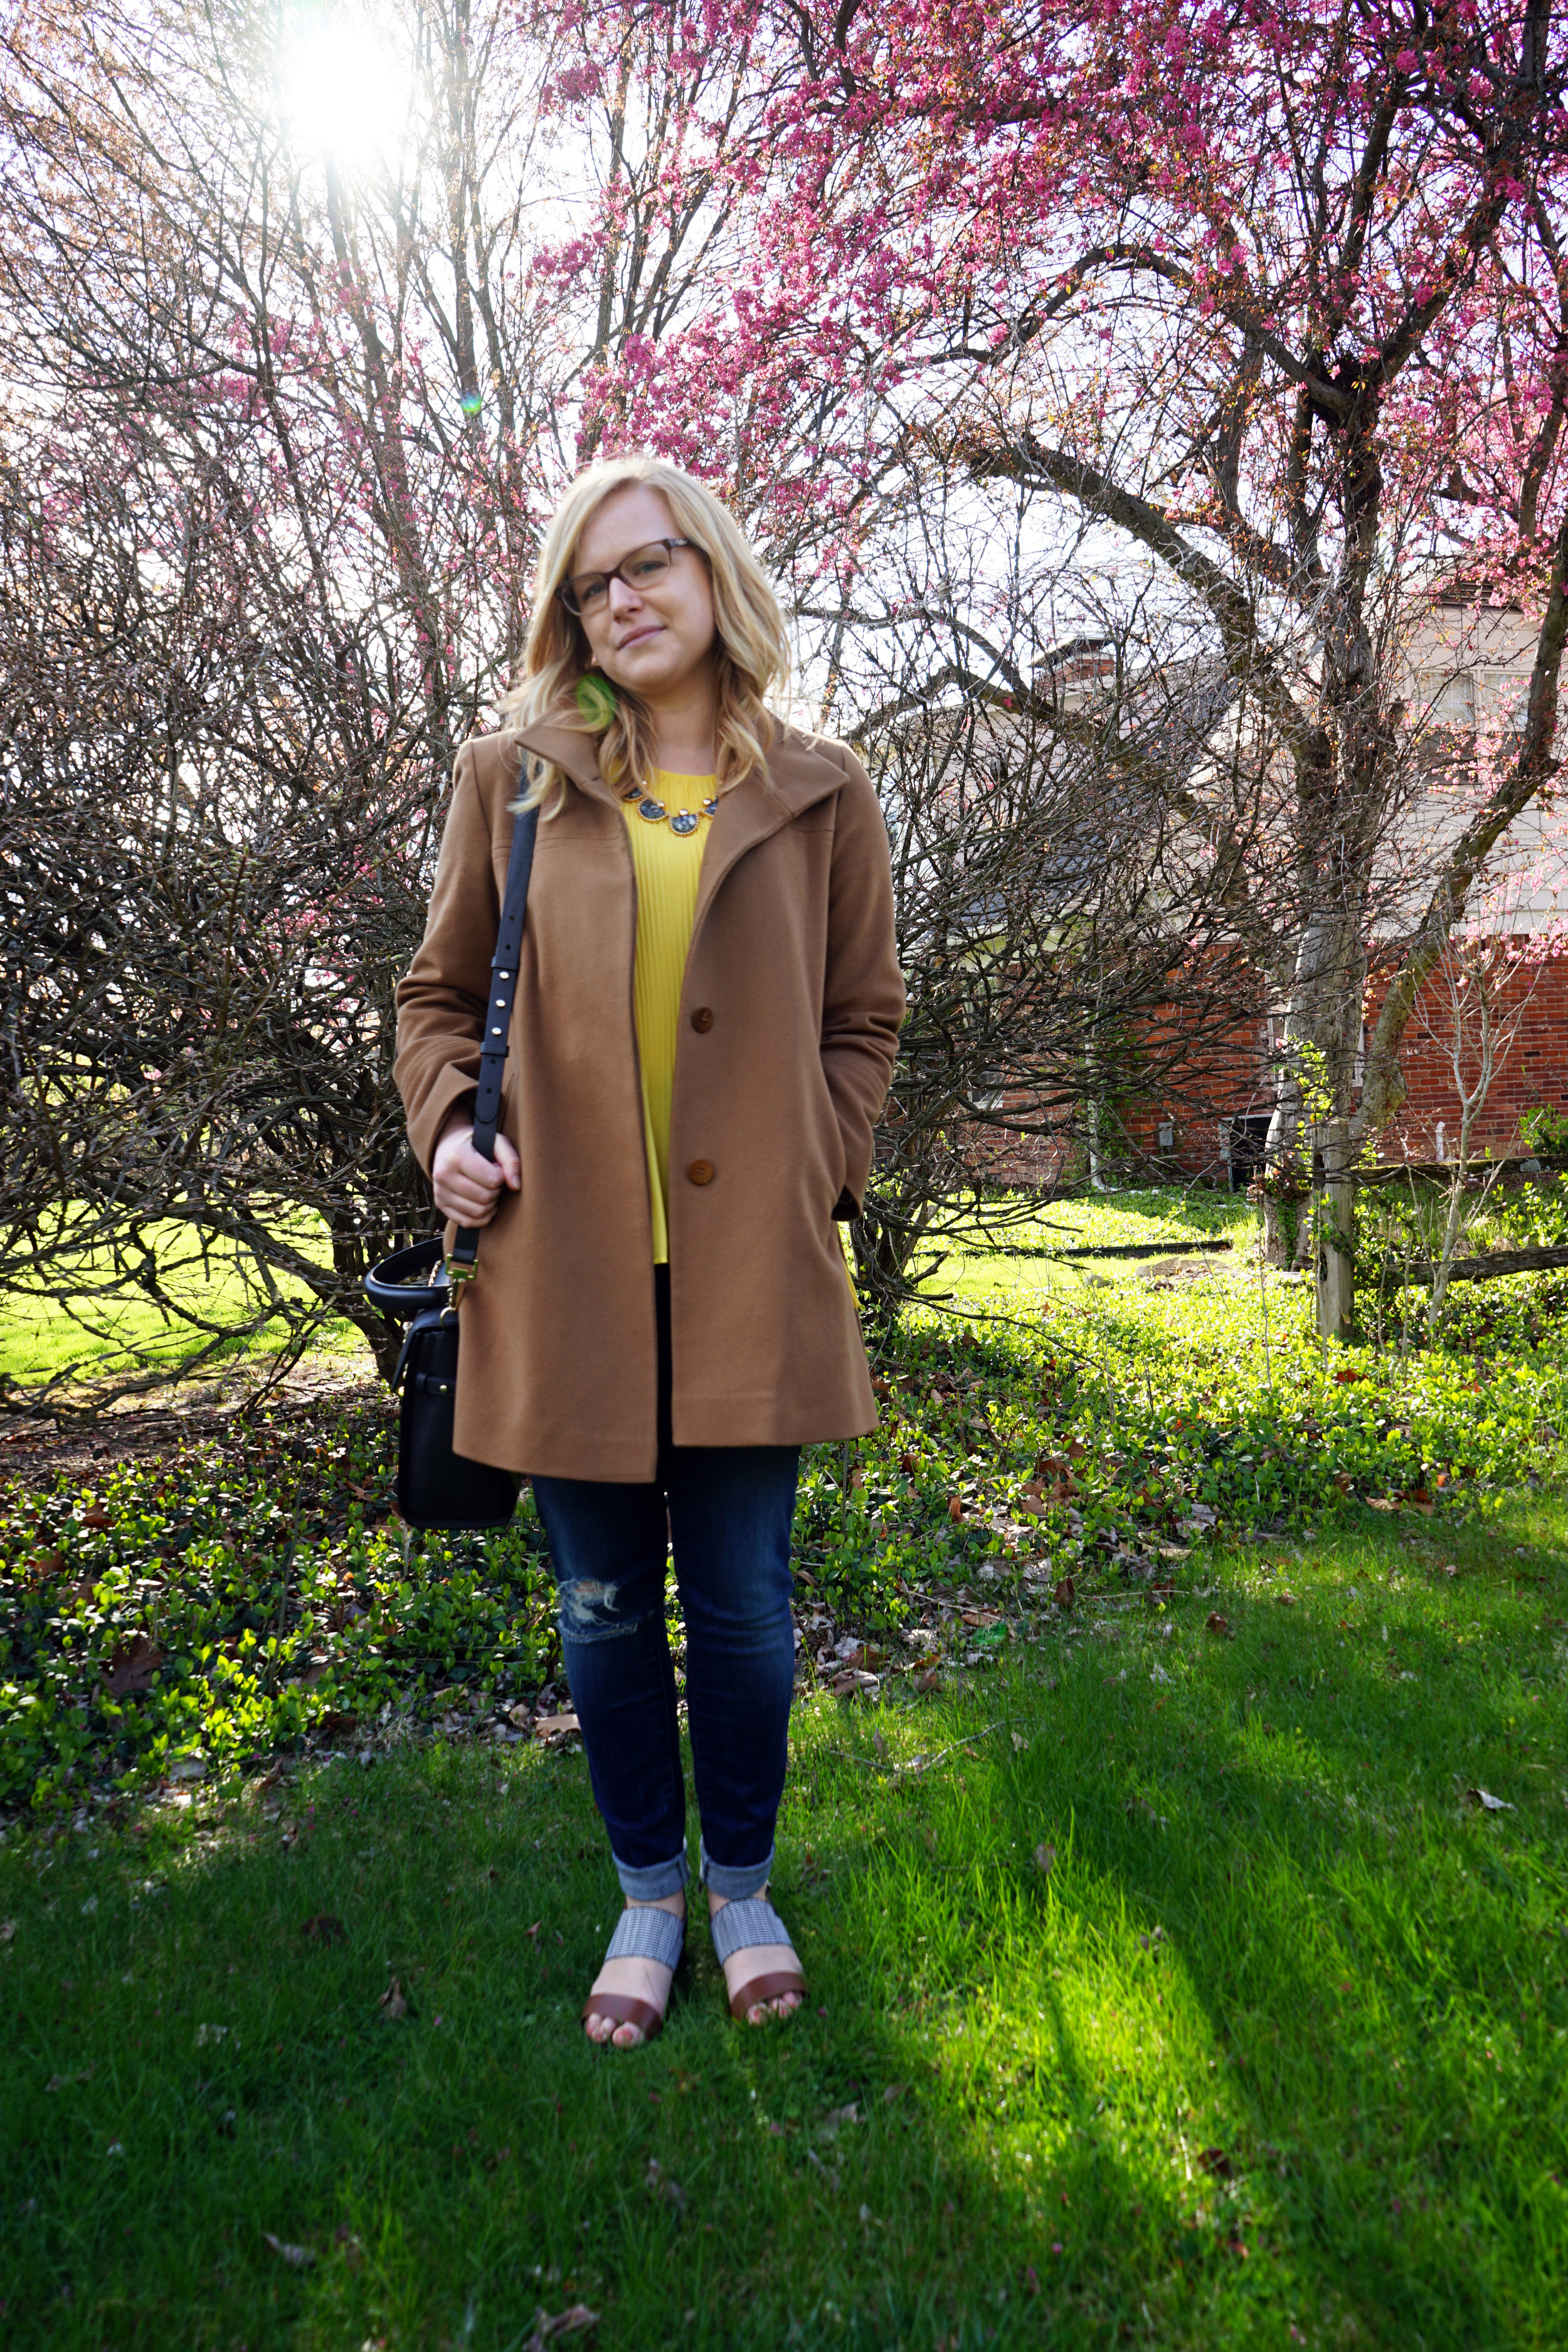 Zara Asymmetric Pleated Top, Fleurette Wool Stand Collar Car Coat, Mother pixie jeans, Modcloth Chelsea Crew Couth Fusion Heel, BaubleBar Howlite Guillotine Collar Necklace, Luana Italy Paley purse